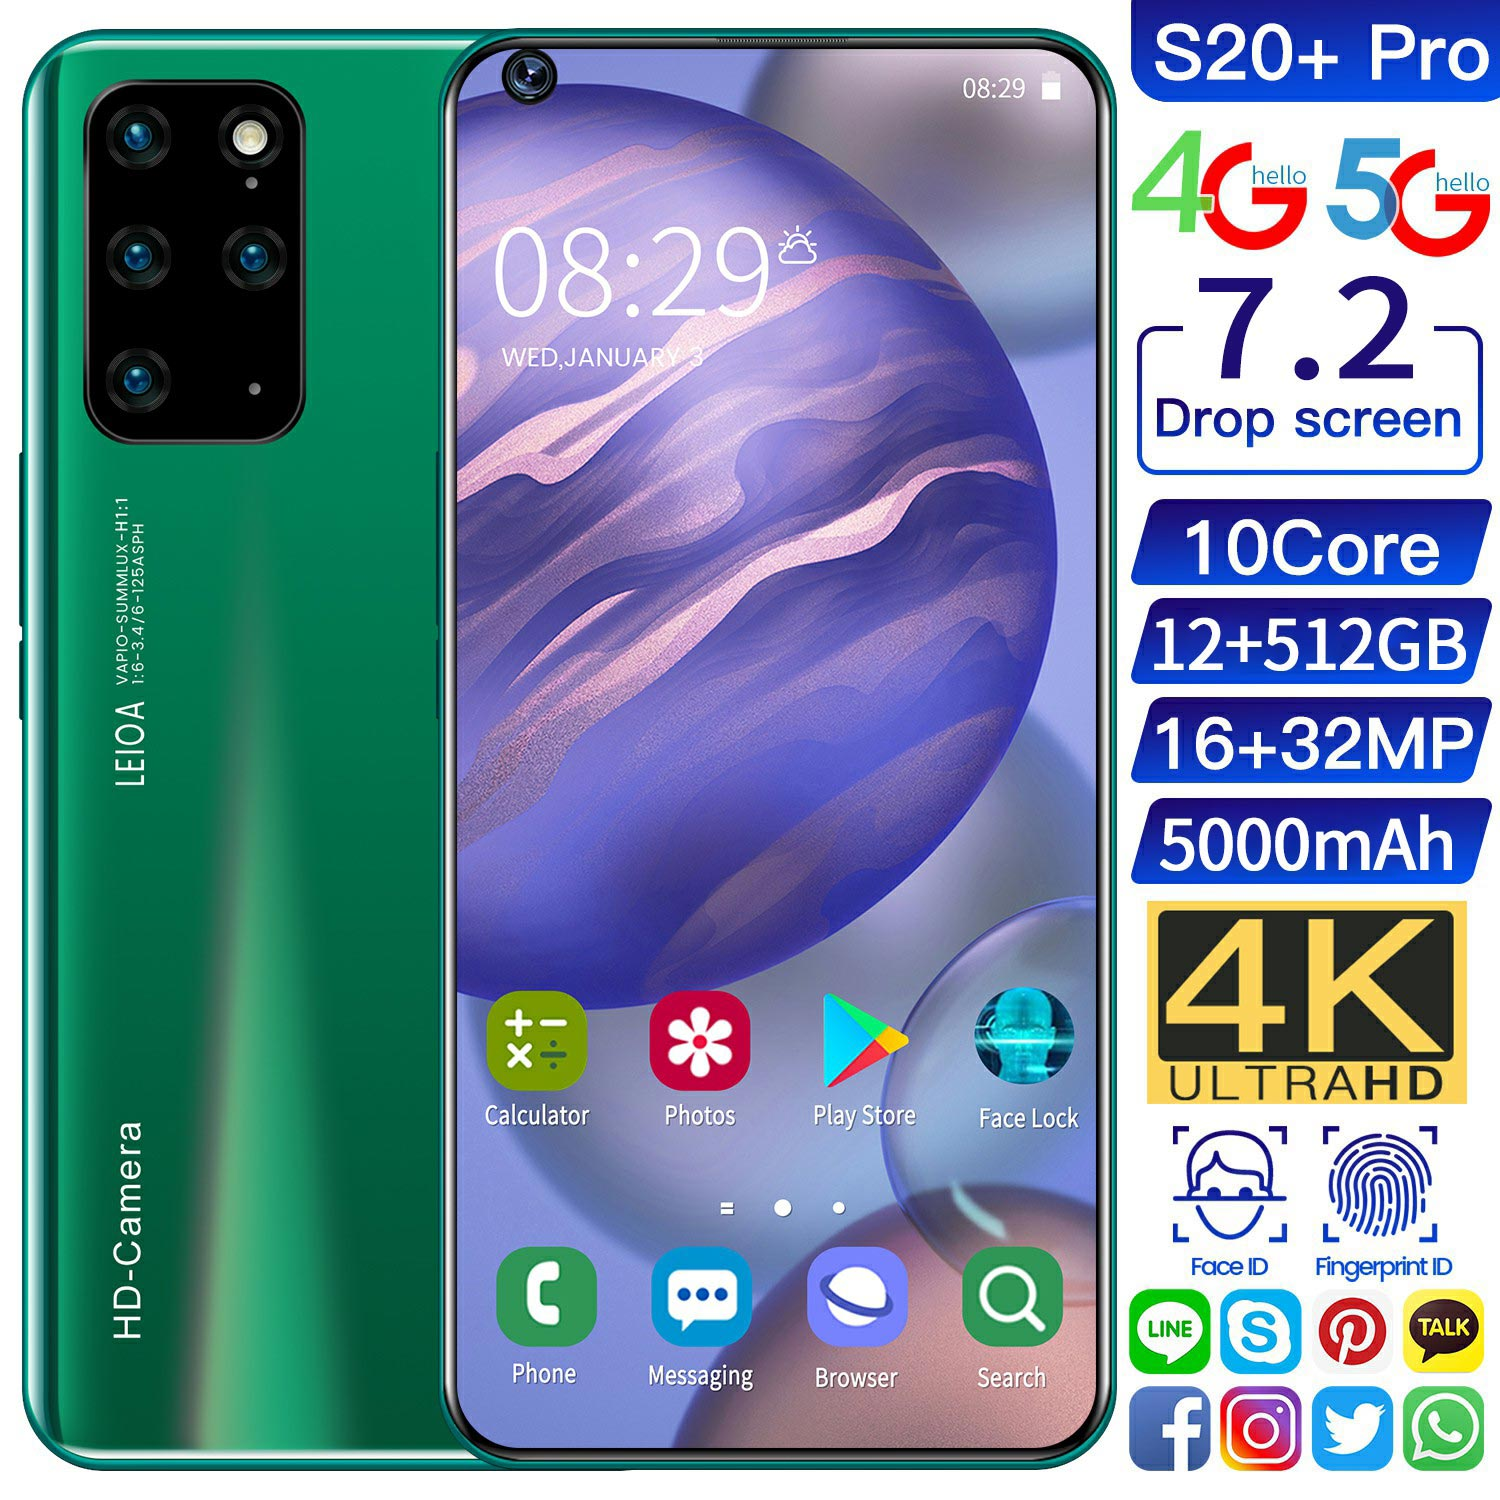 Global Version S20+ Pro 7.2''Smartphone 12GB 512GB Big Hd Screen Fast Running 5000mAh 4G LTE 5G Network Mobile Phone Rear Camera